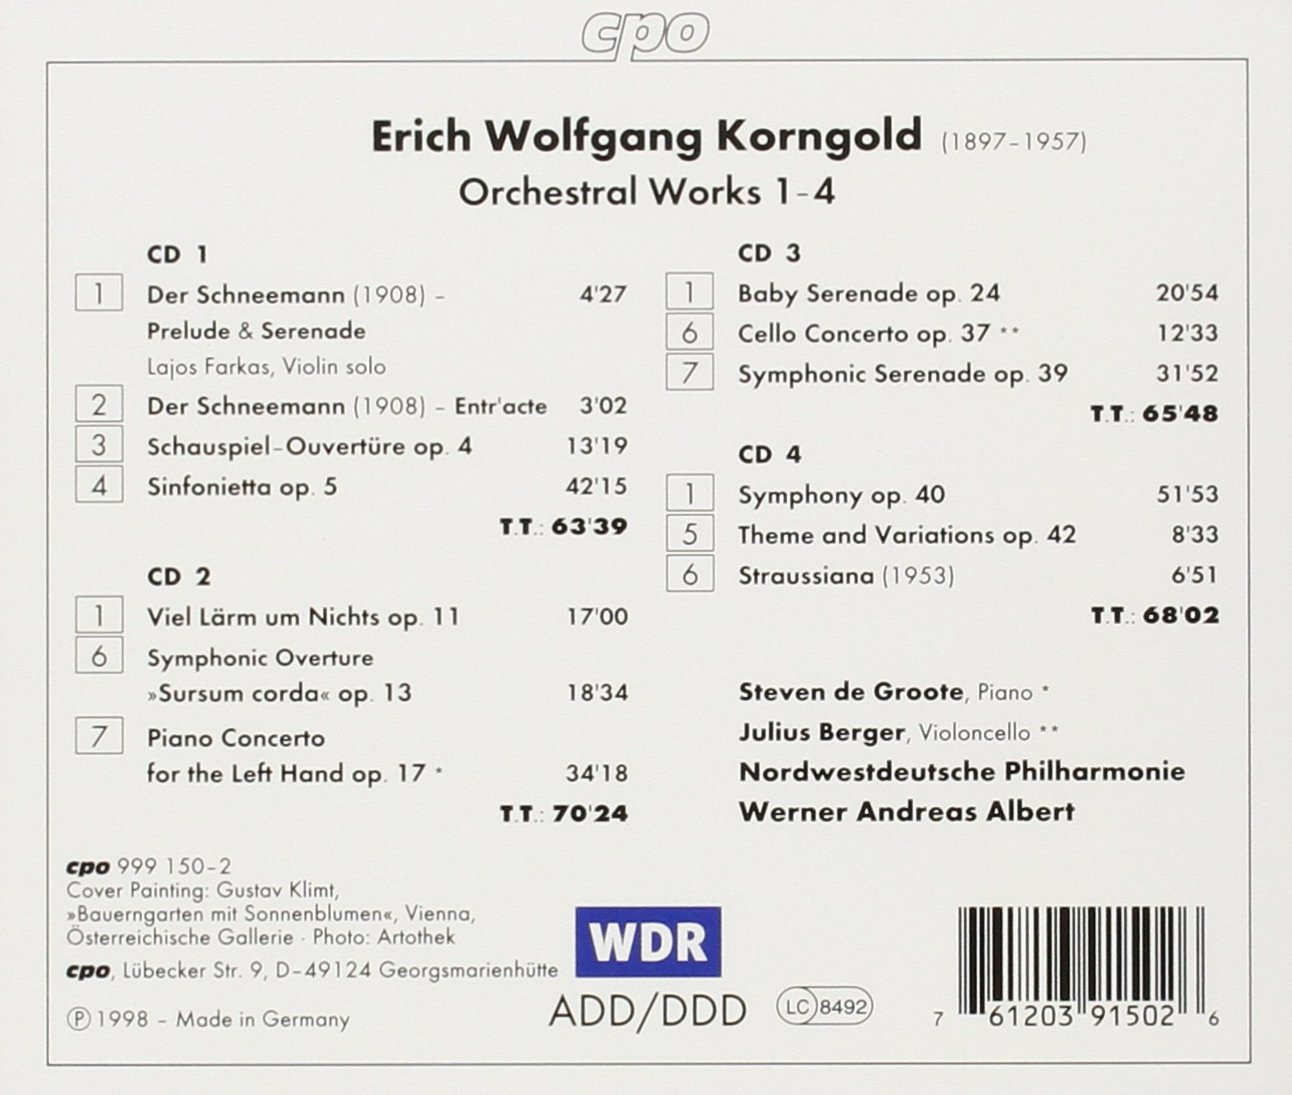 Orchestral Works 1-4 by CPO